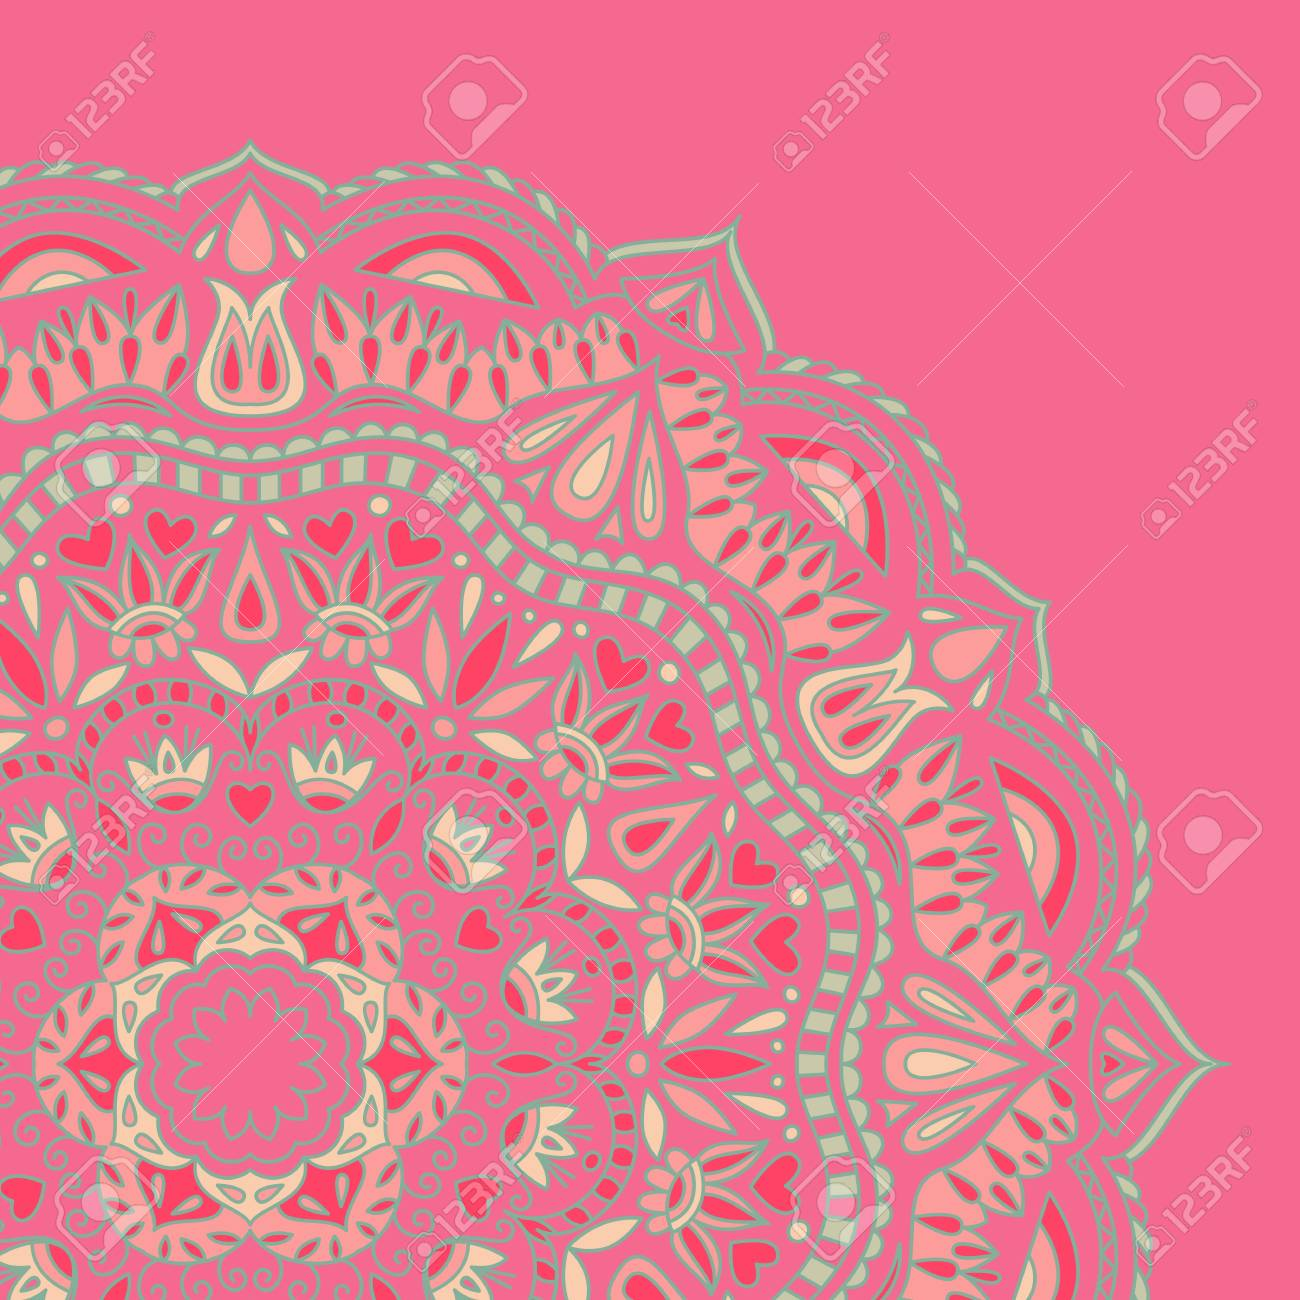 illustration with ornament for greeting card. Stock Vector - 13196948